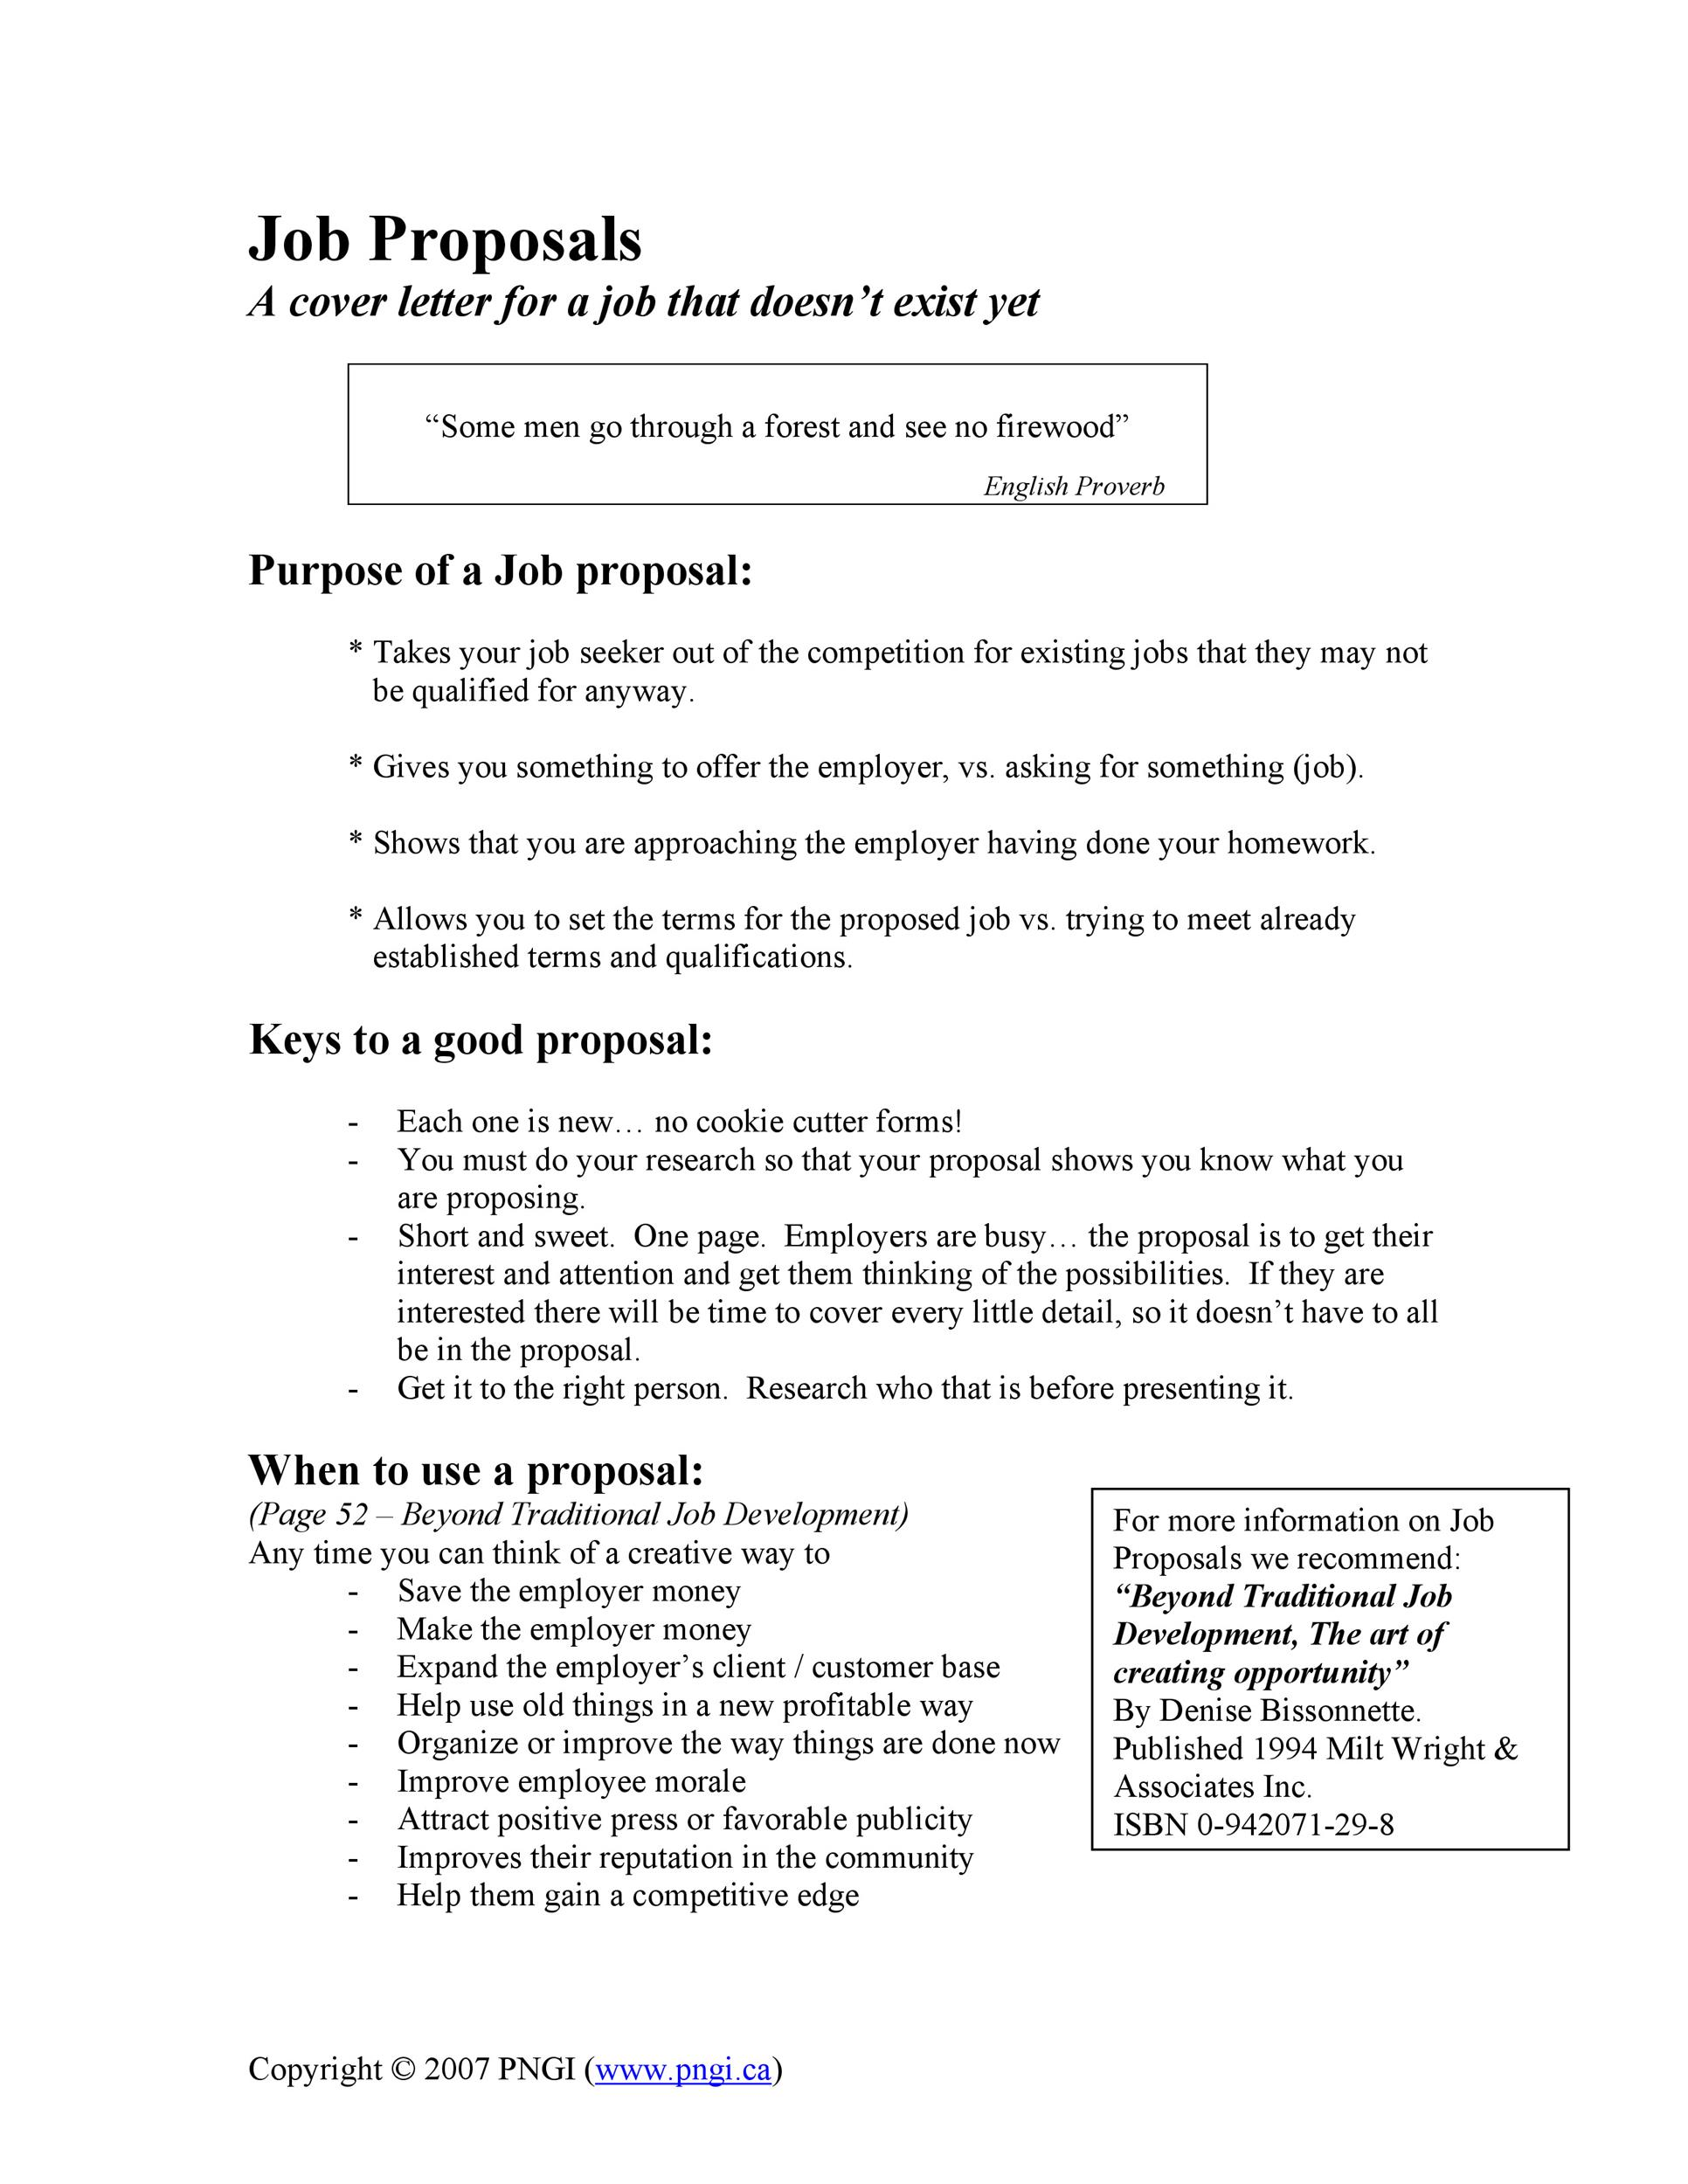 Free Job Proposal Template 13